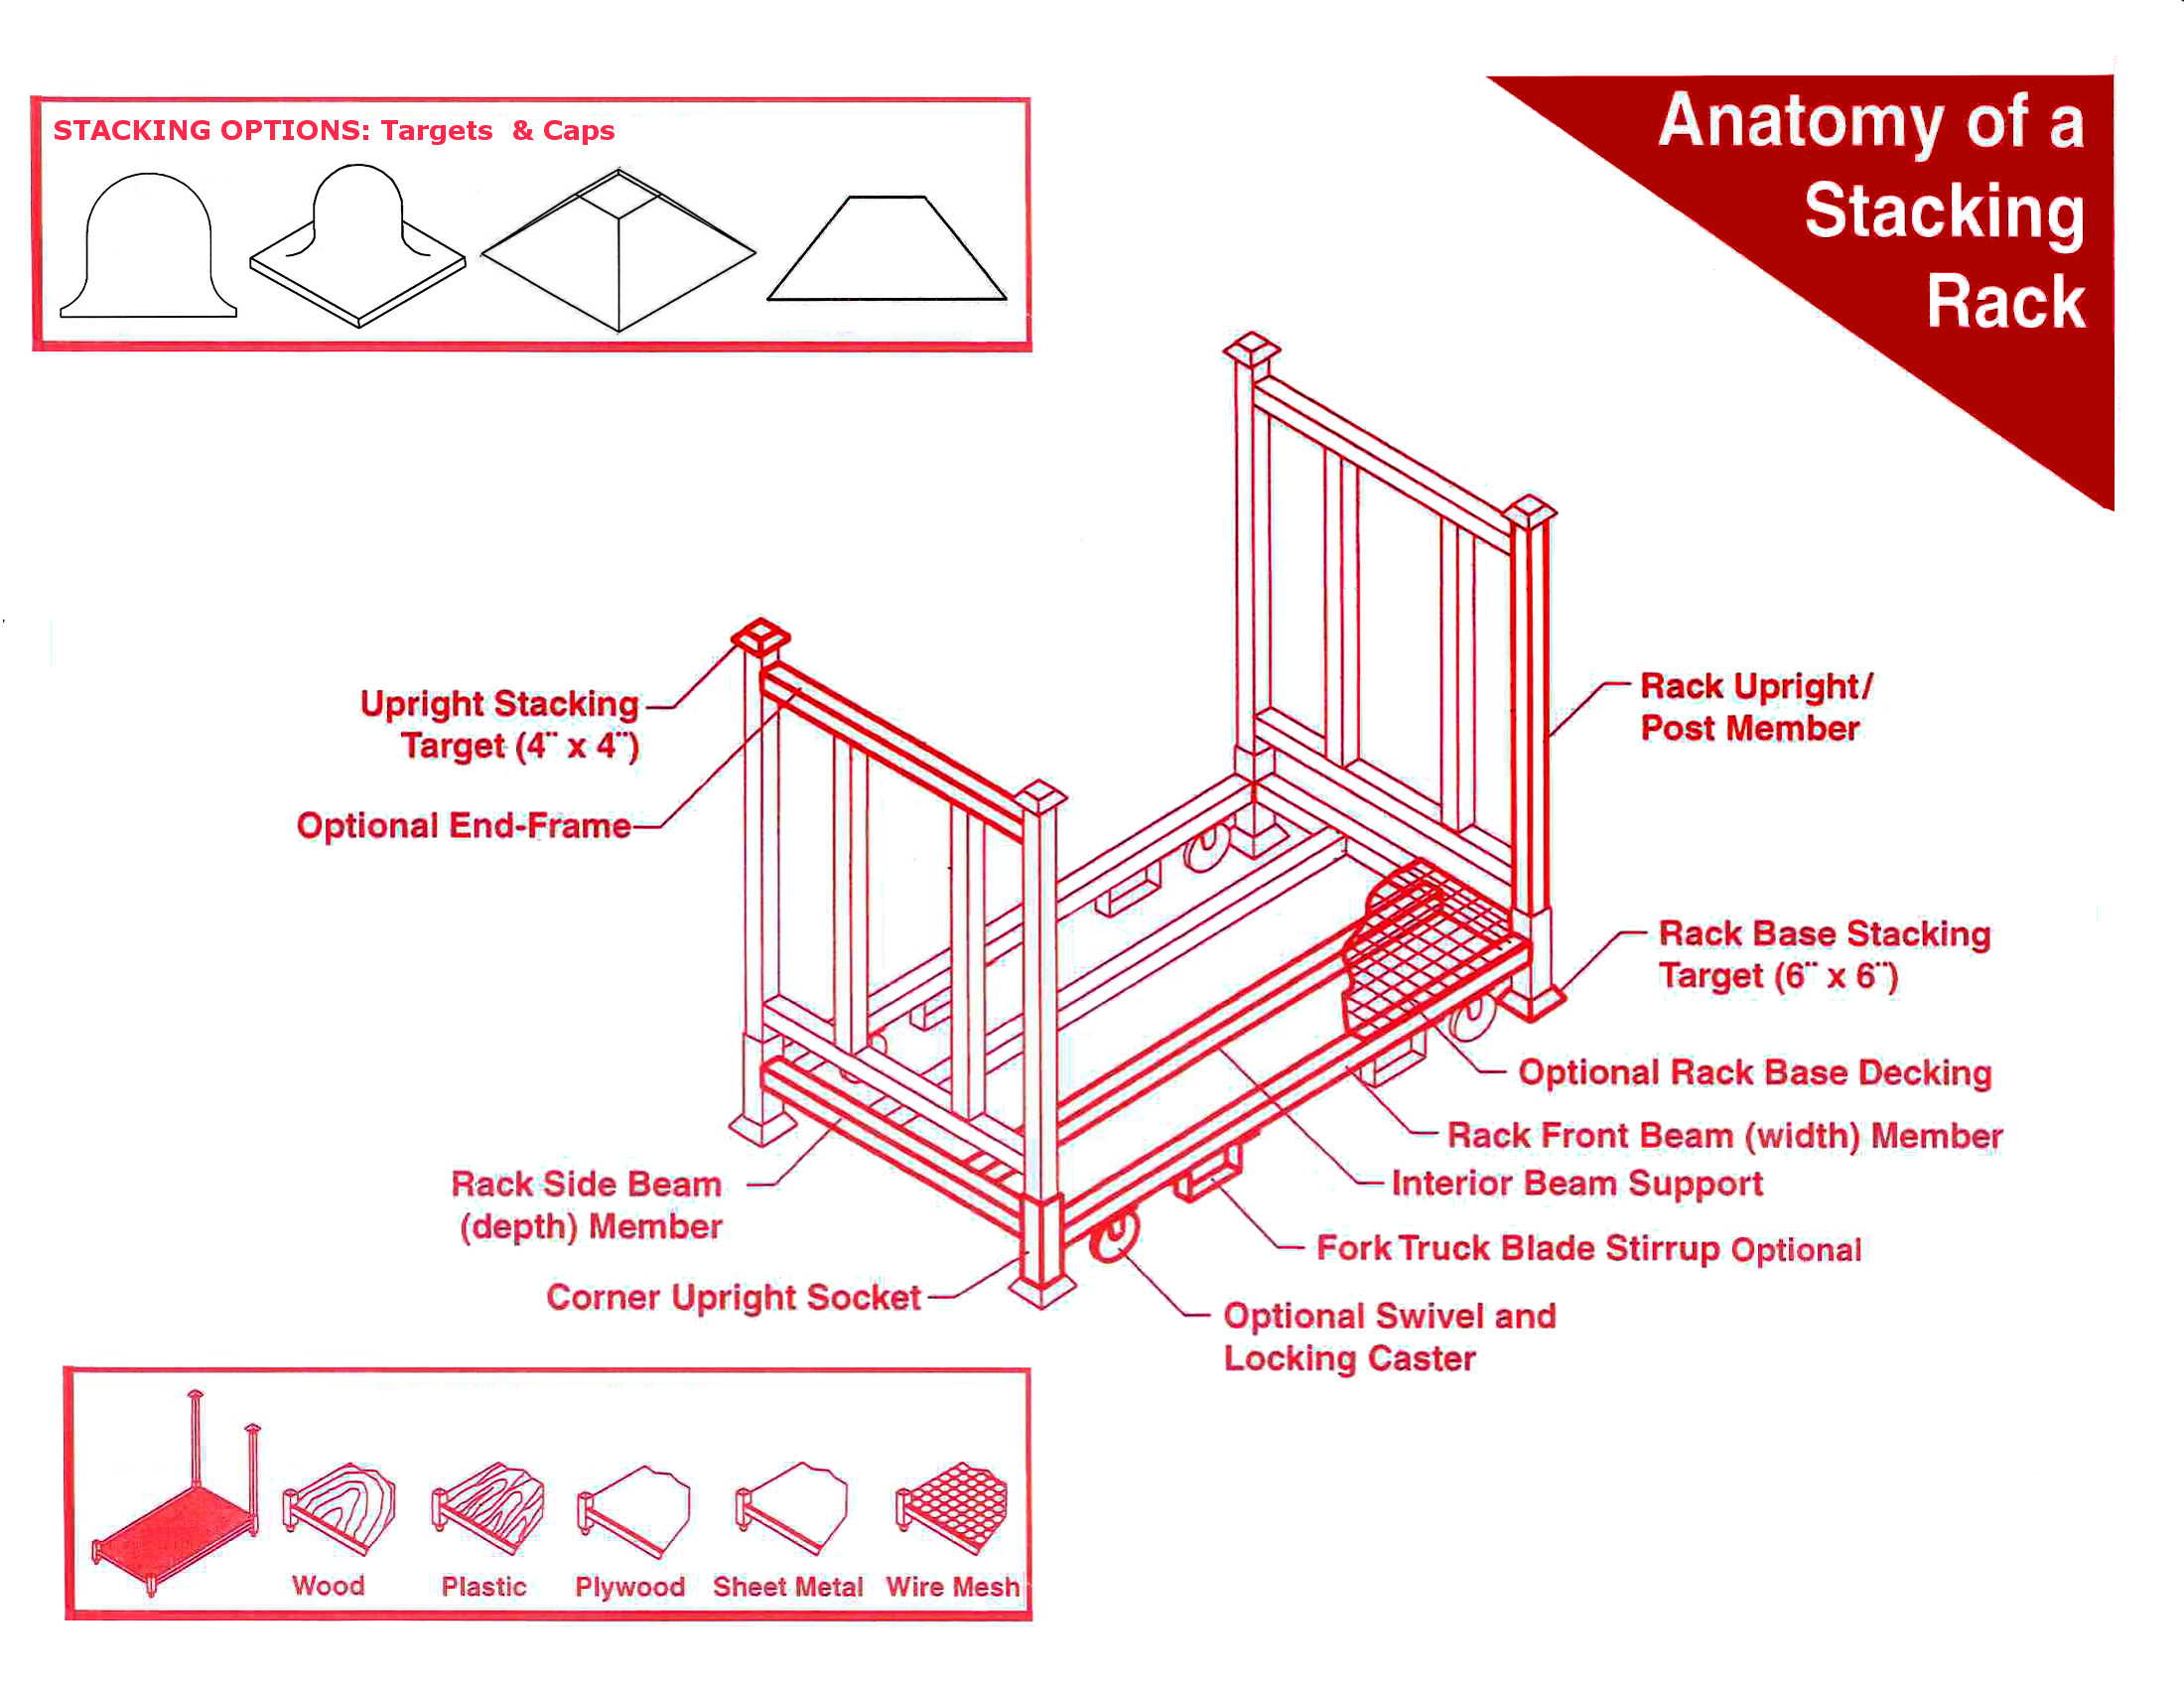 Anatomy of a portable stack rack.